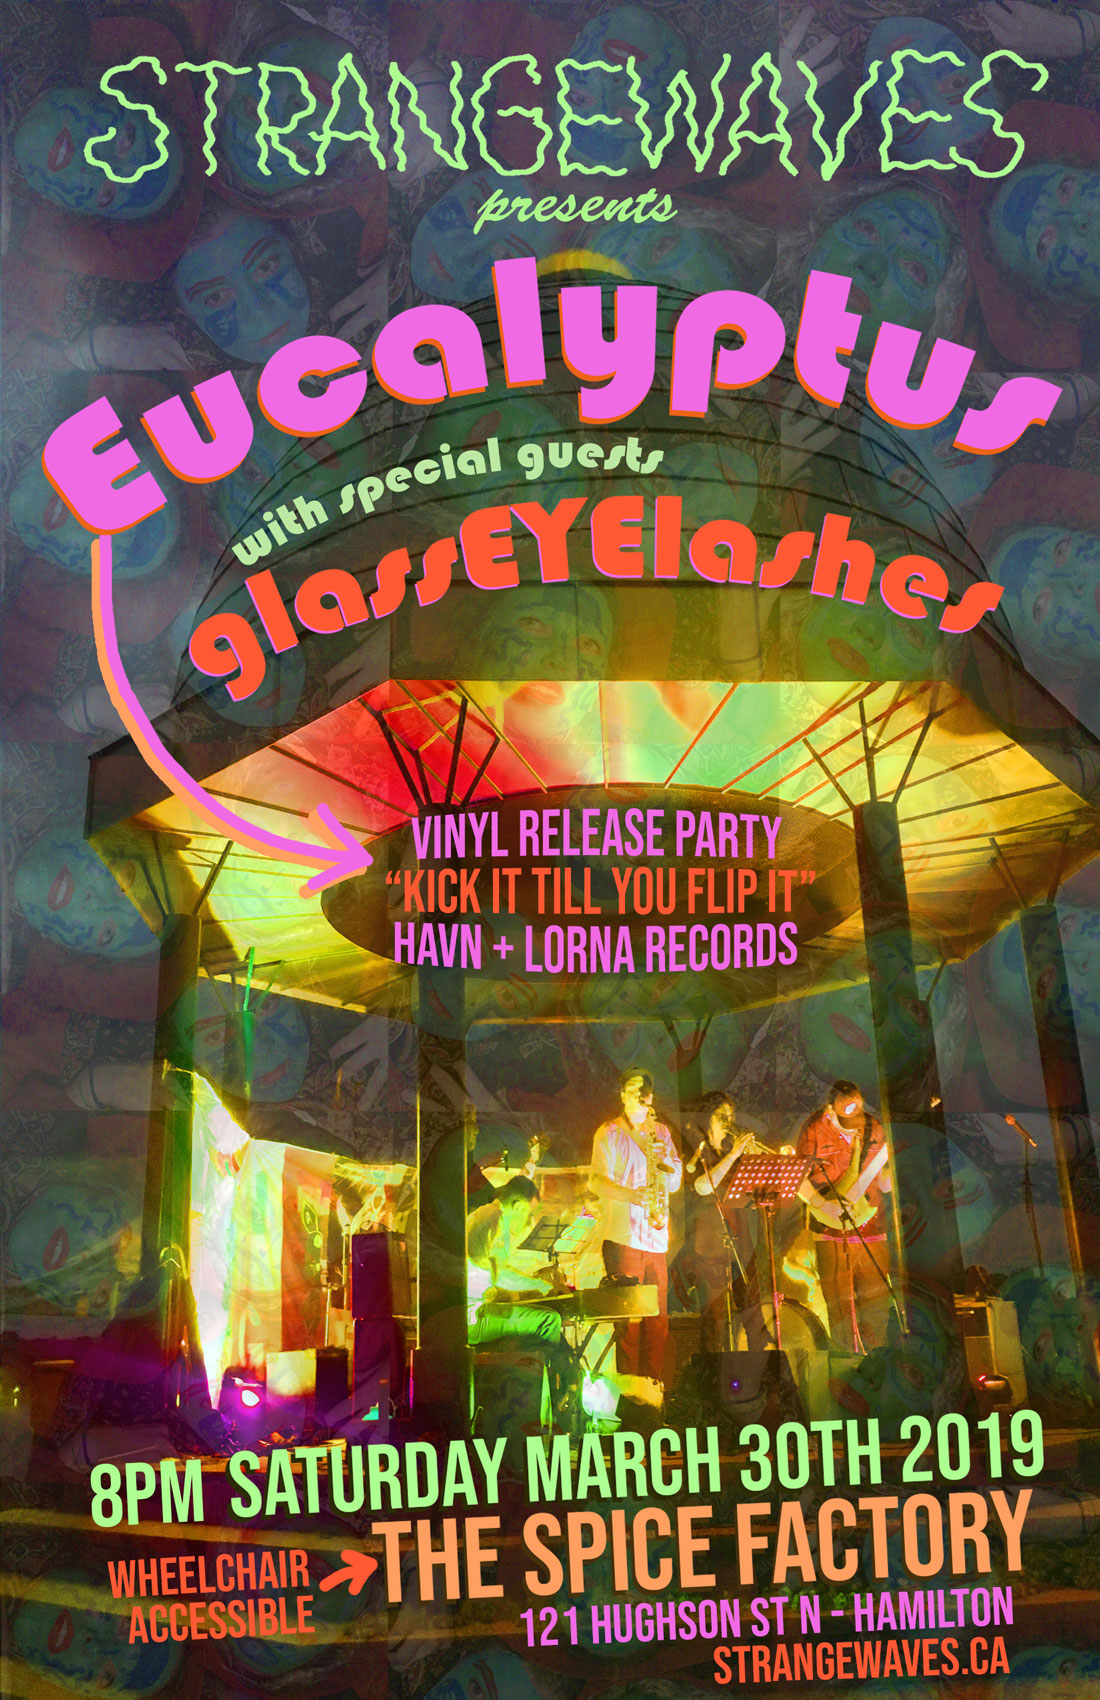 Eucalyptus (hamilton LP release), GlassEYElashes  @ The Spice Factory